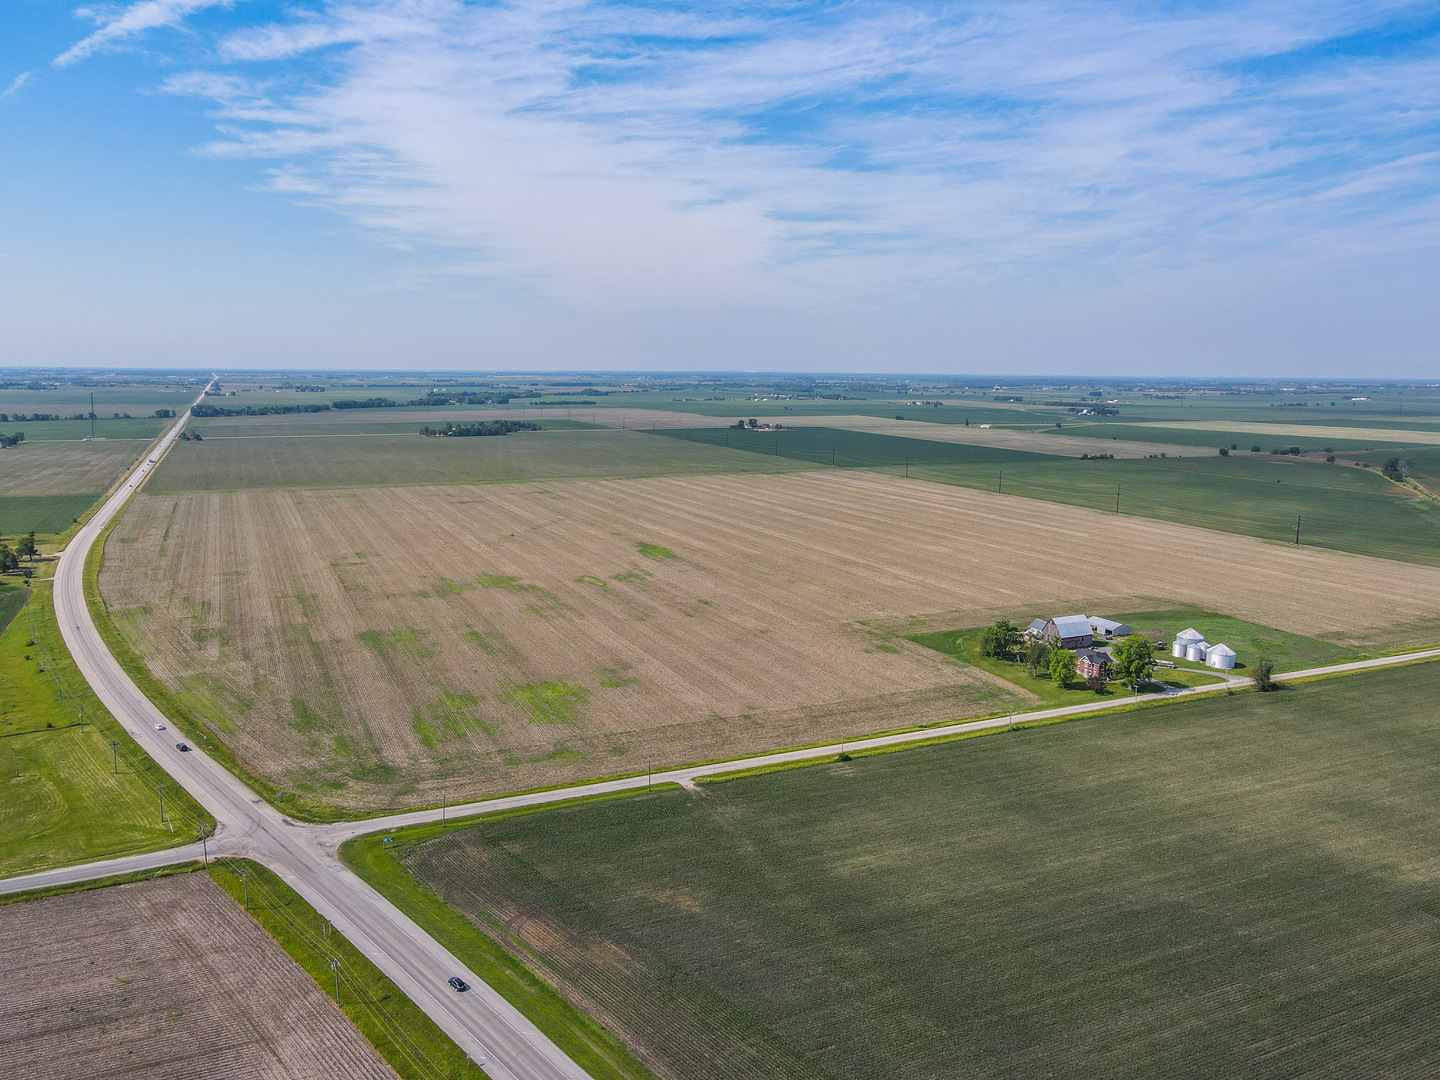 Section 6 Manteno twp 12000 N Rd/Rt 45-52, Manteno, Illinois 60950, ,Farm,For Sale,12000 N Rd/Rt 45-52,MRD11125809